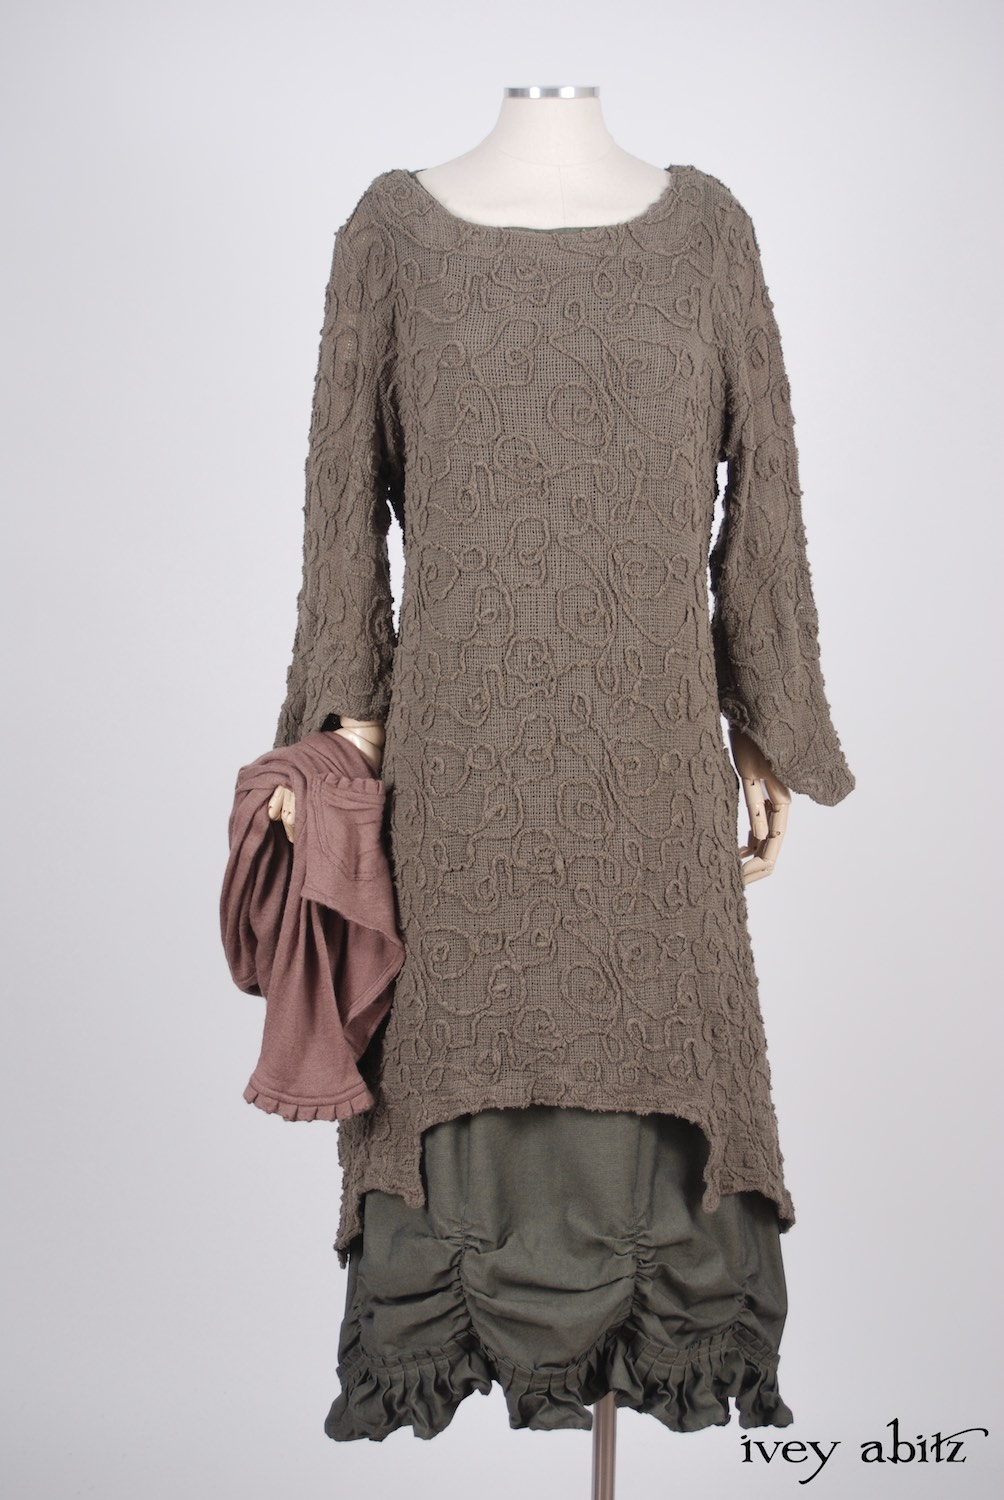 Ivey Abitz - Canterbury Cardigan in Blushed Cashmere Knit  - Chittister Dress in Meadow Embroidered Swirl Gauze  - Edenshire Frock in Morning Meadow Yarn Dyed Cotton, Low Water Length